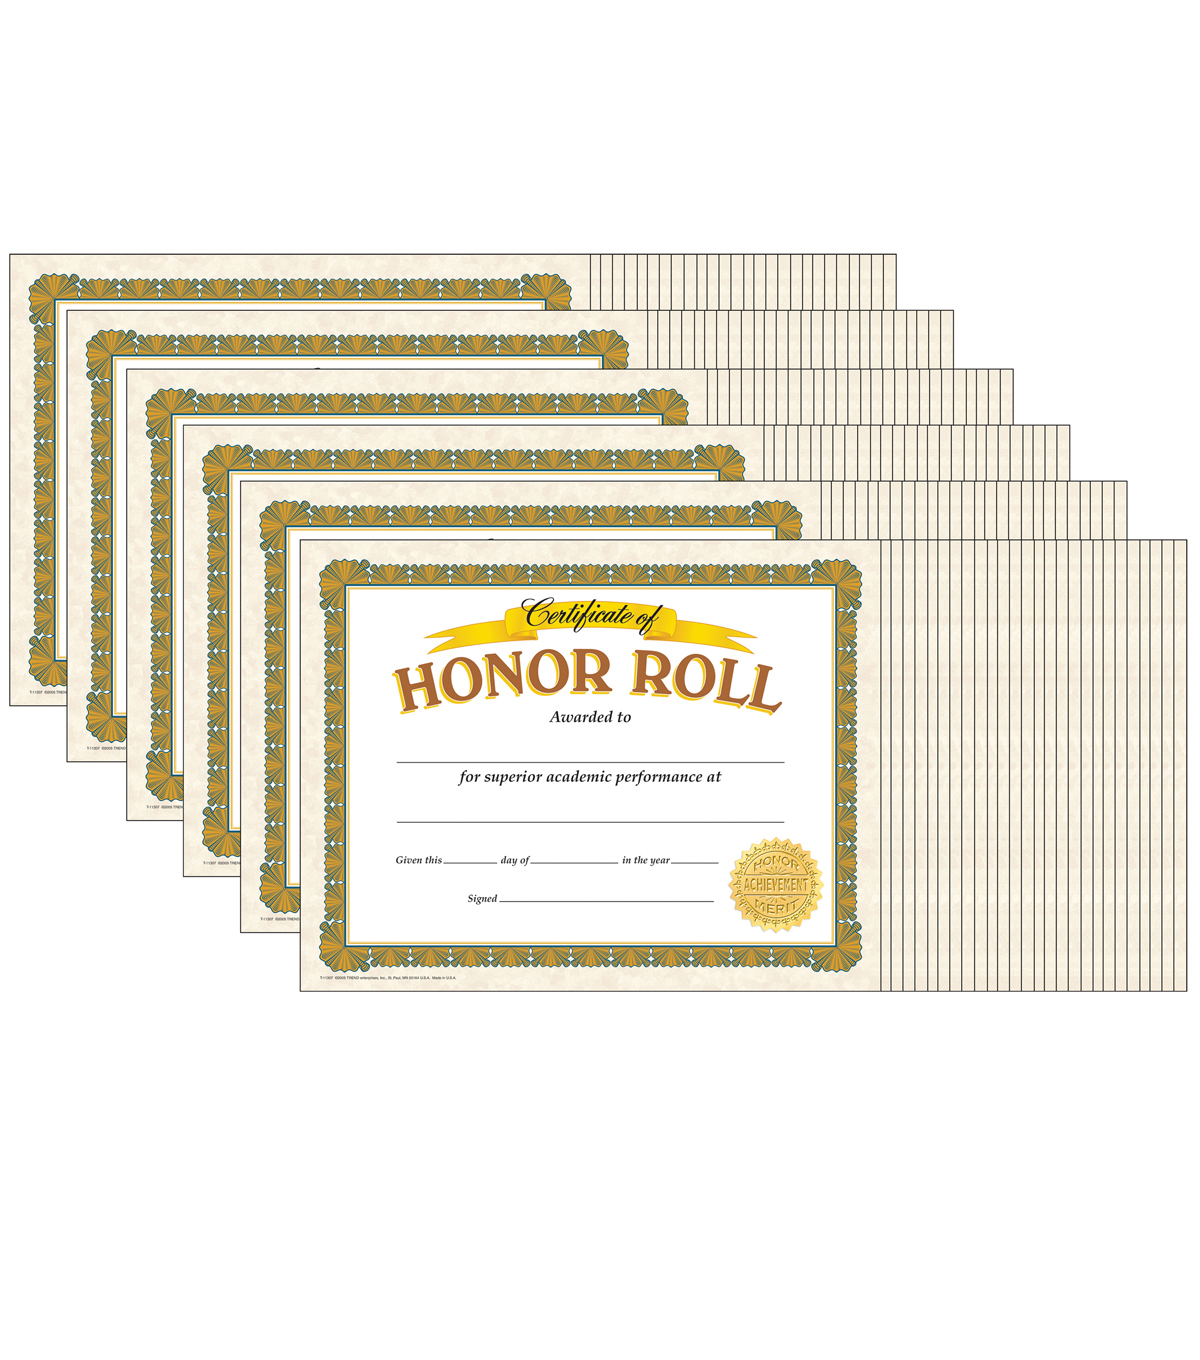 Trend Enterprises Inc. Honor Roll Classic Certificates, 30 Per Pack